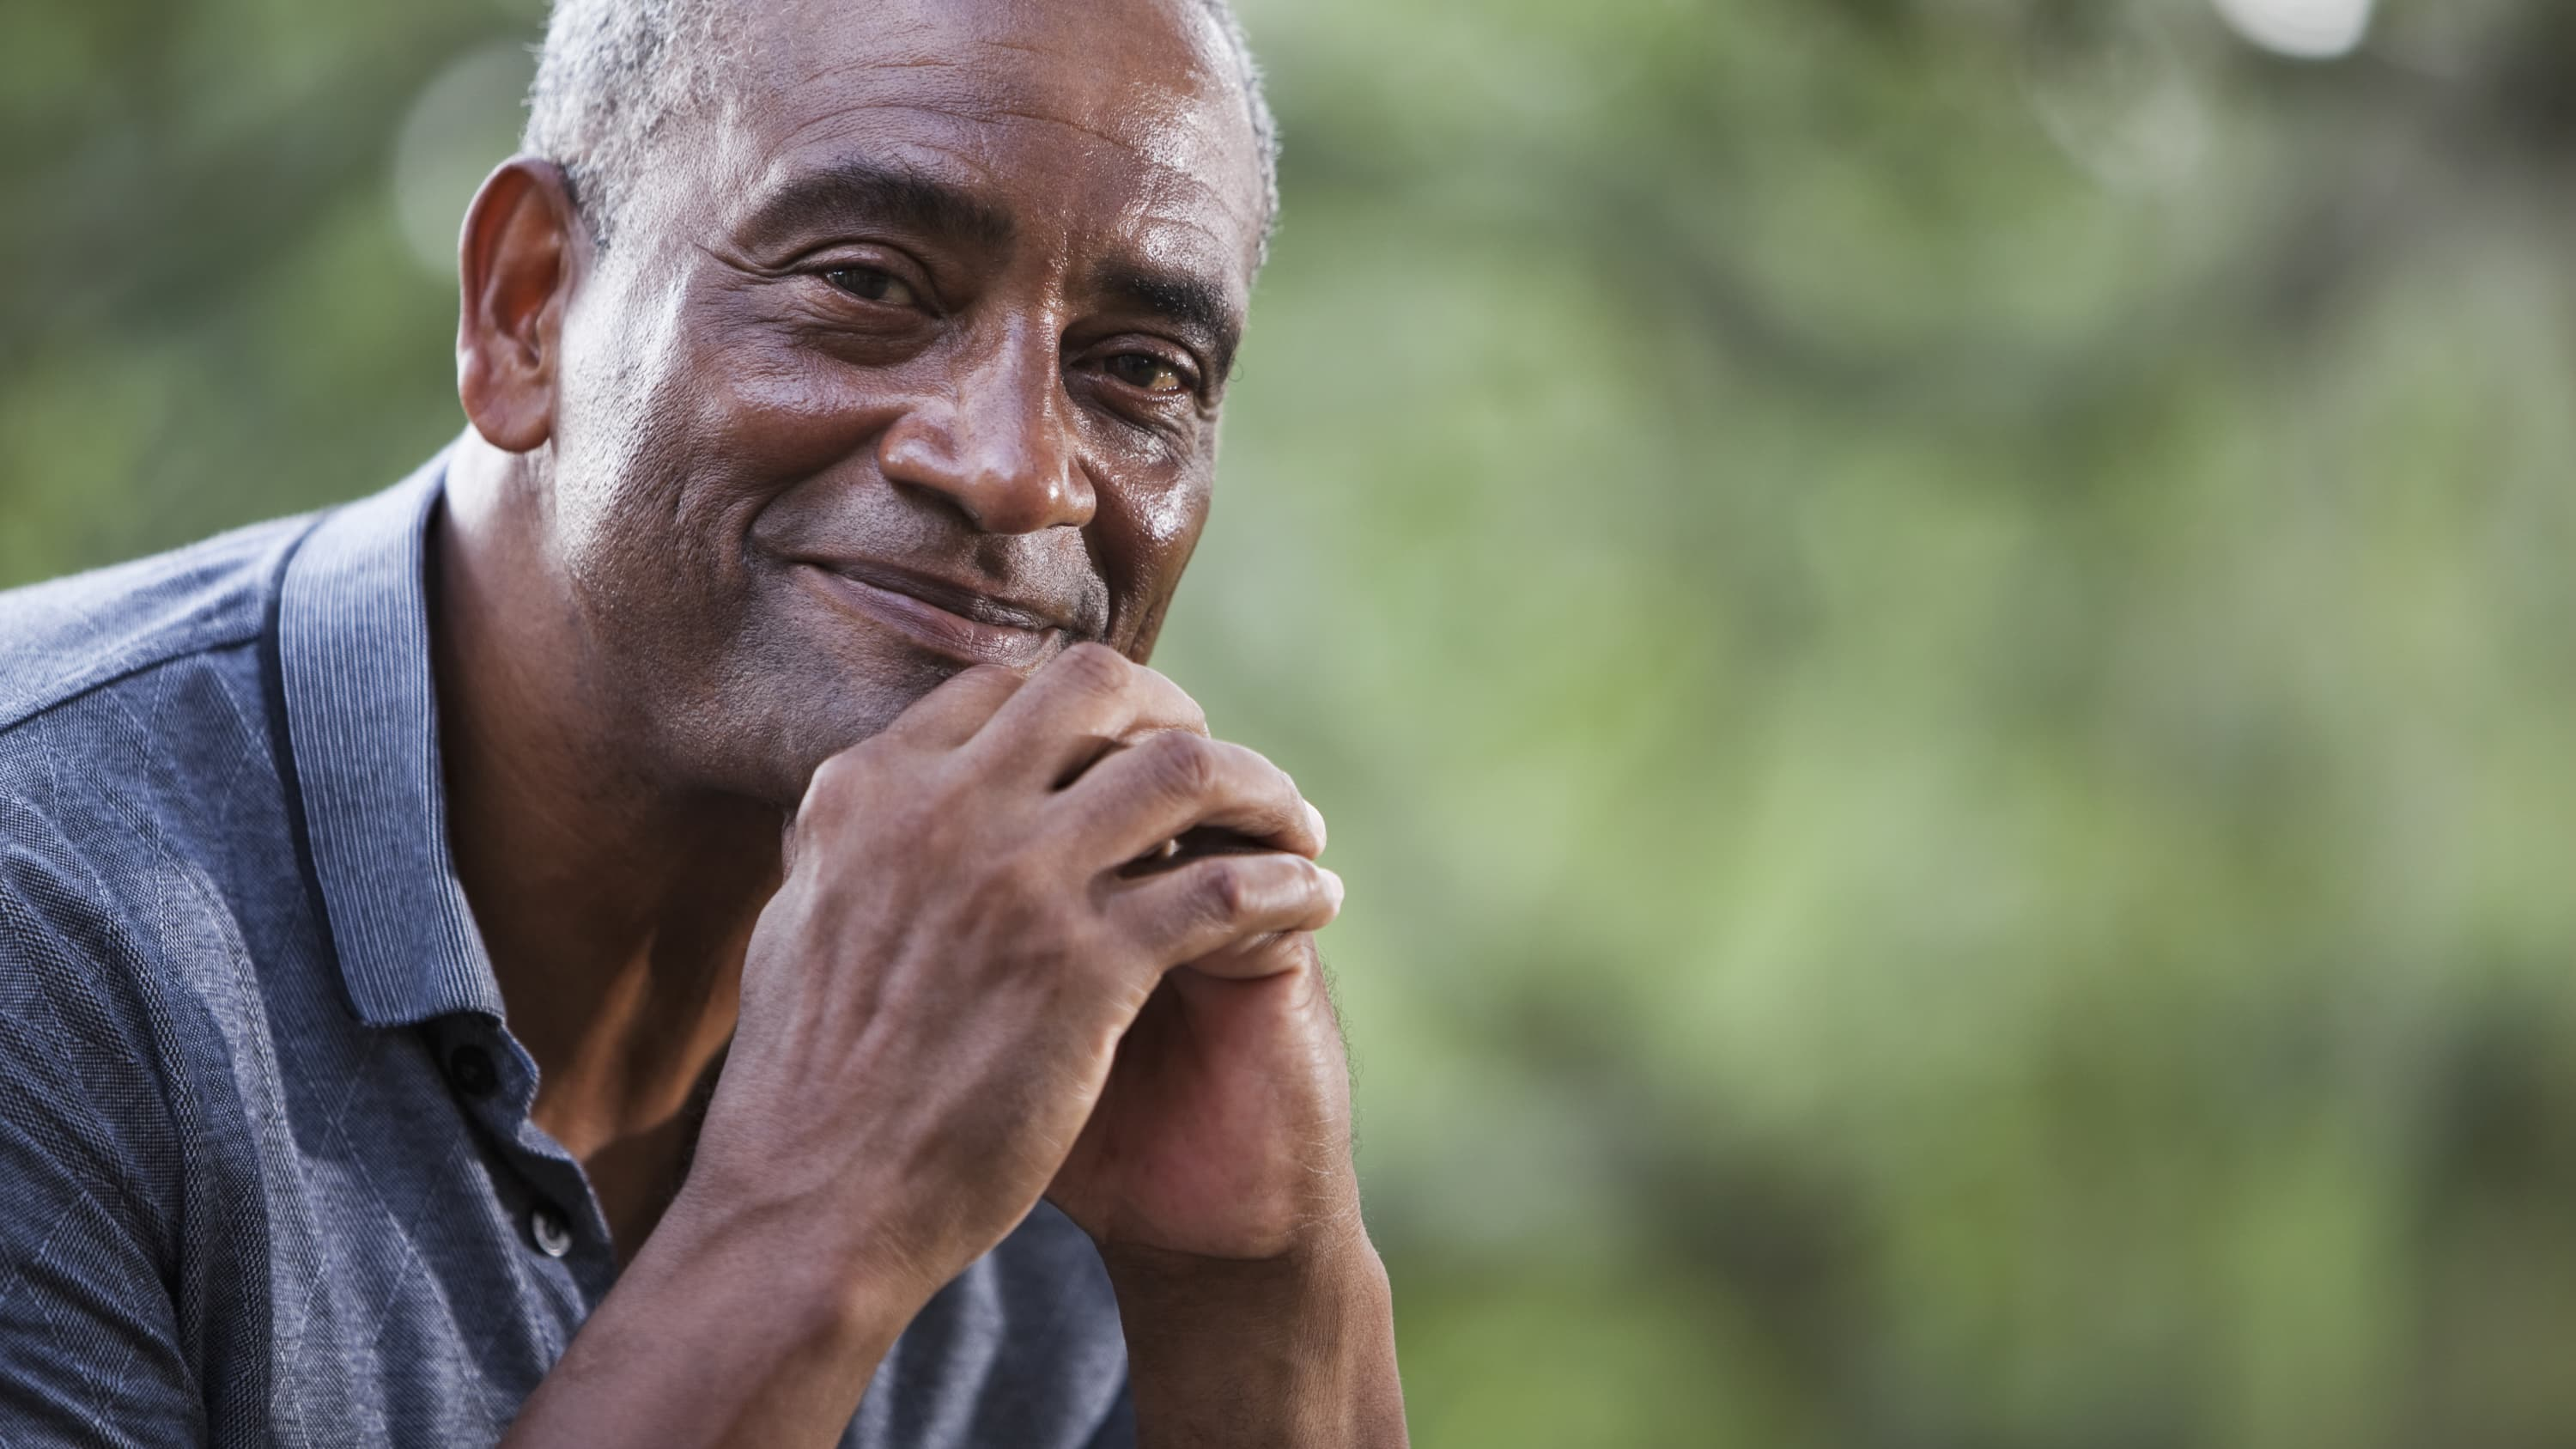 An older man who is holding his hands in front of his face and may be smiling because he had a negative prostate cancer screening .